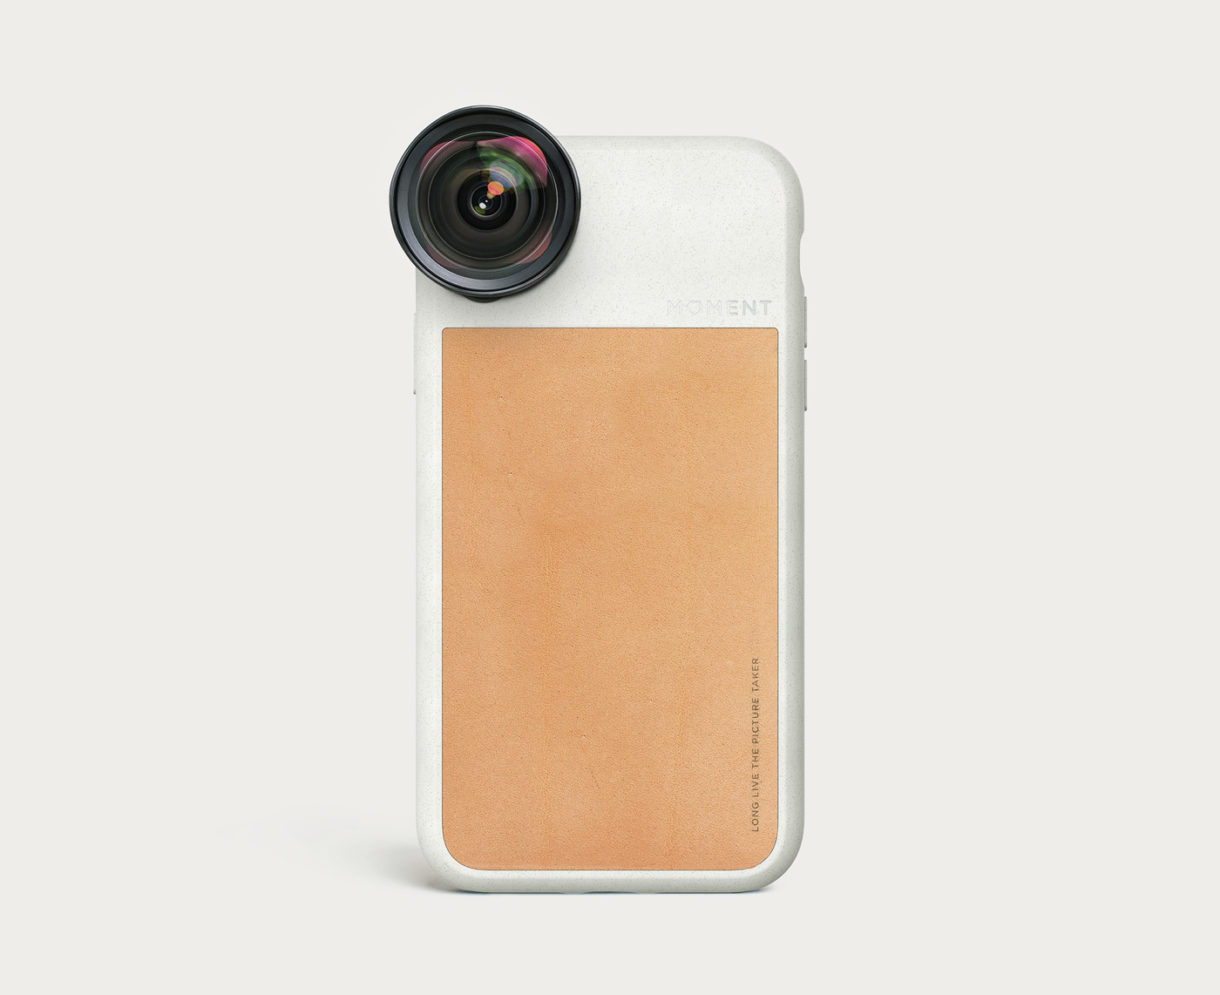 on sale a74f8 7b9e2 iPhone Photo Case | iPhone XR - Tan Leather